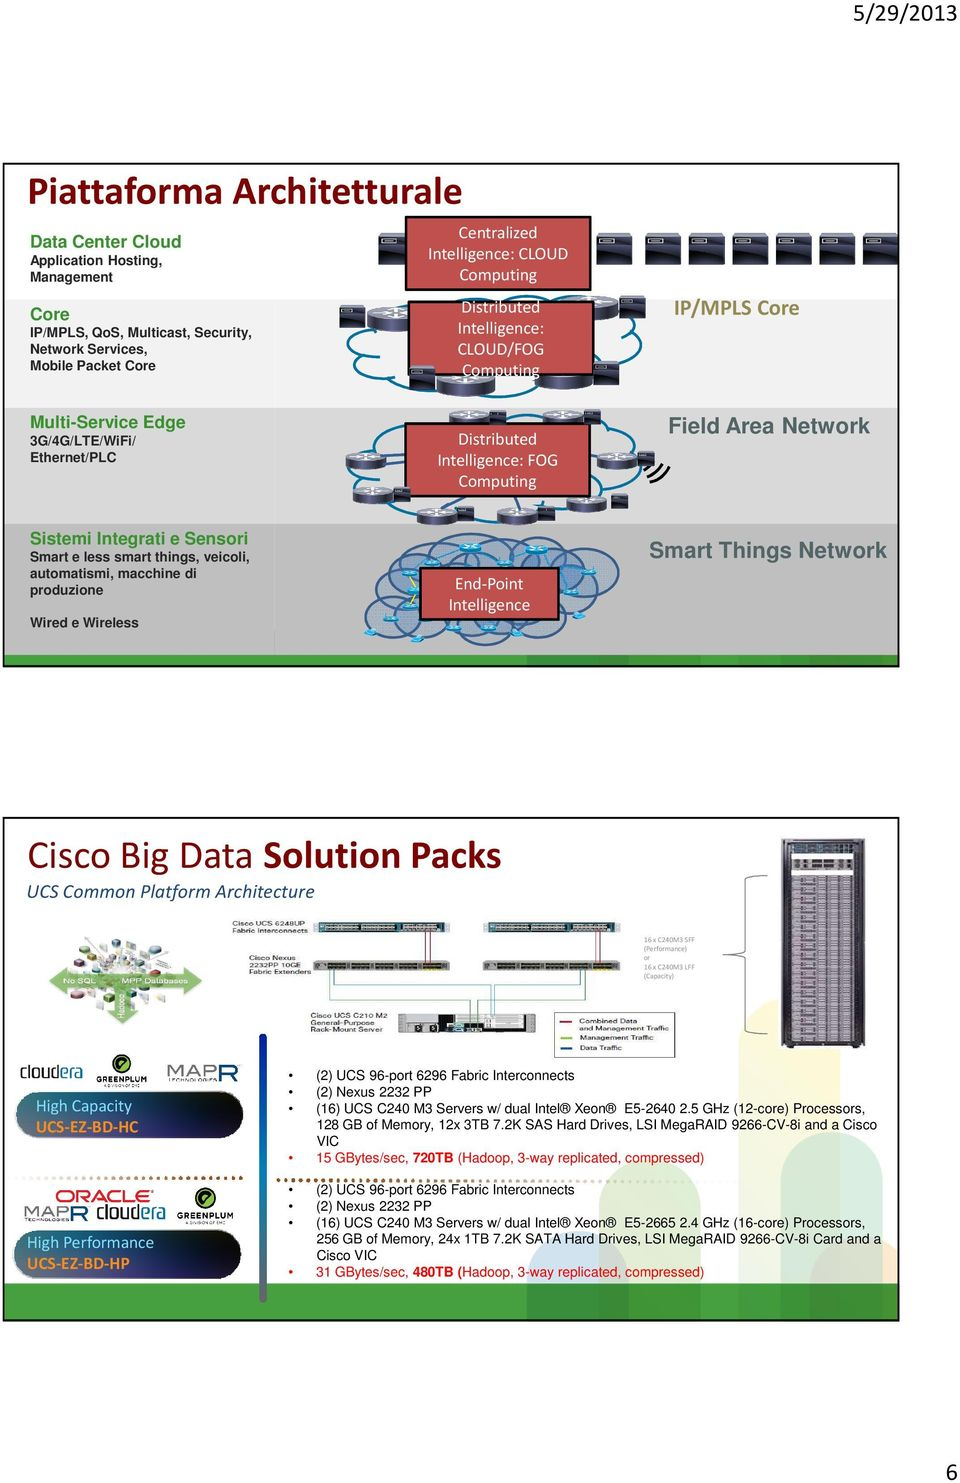 e less smart things, veicoli, automatismi, macchine di produzione Wired e Wireless End-Point Intelligence Smart Things Network Cisco Big Data Solution Packs UCS Common Platform Architecture 16 x